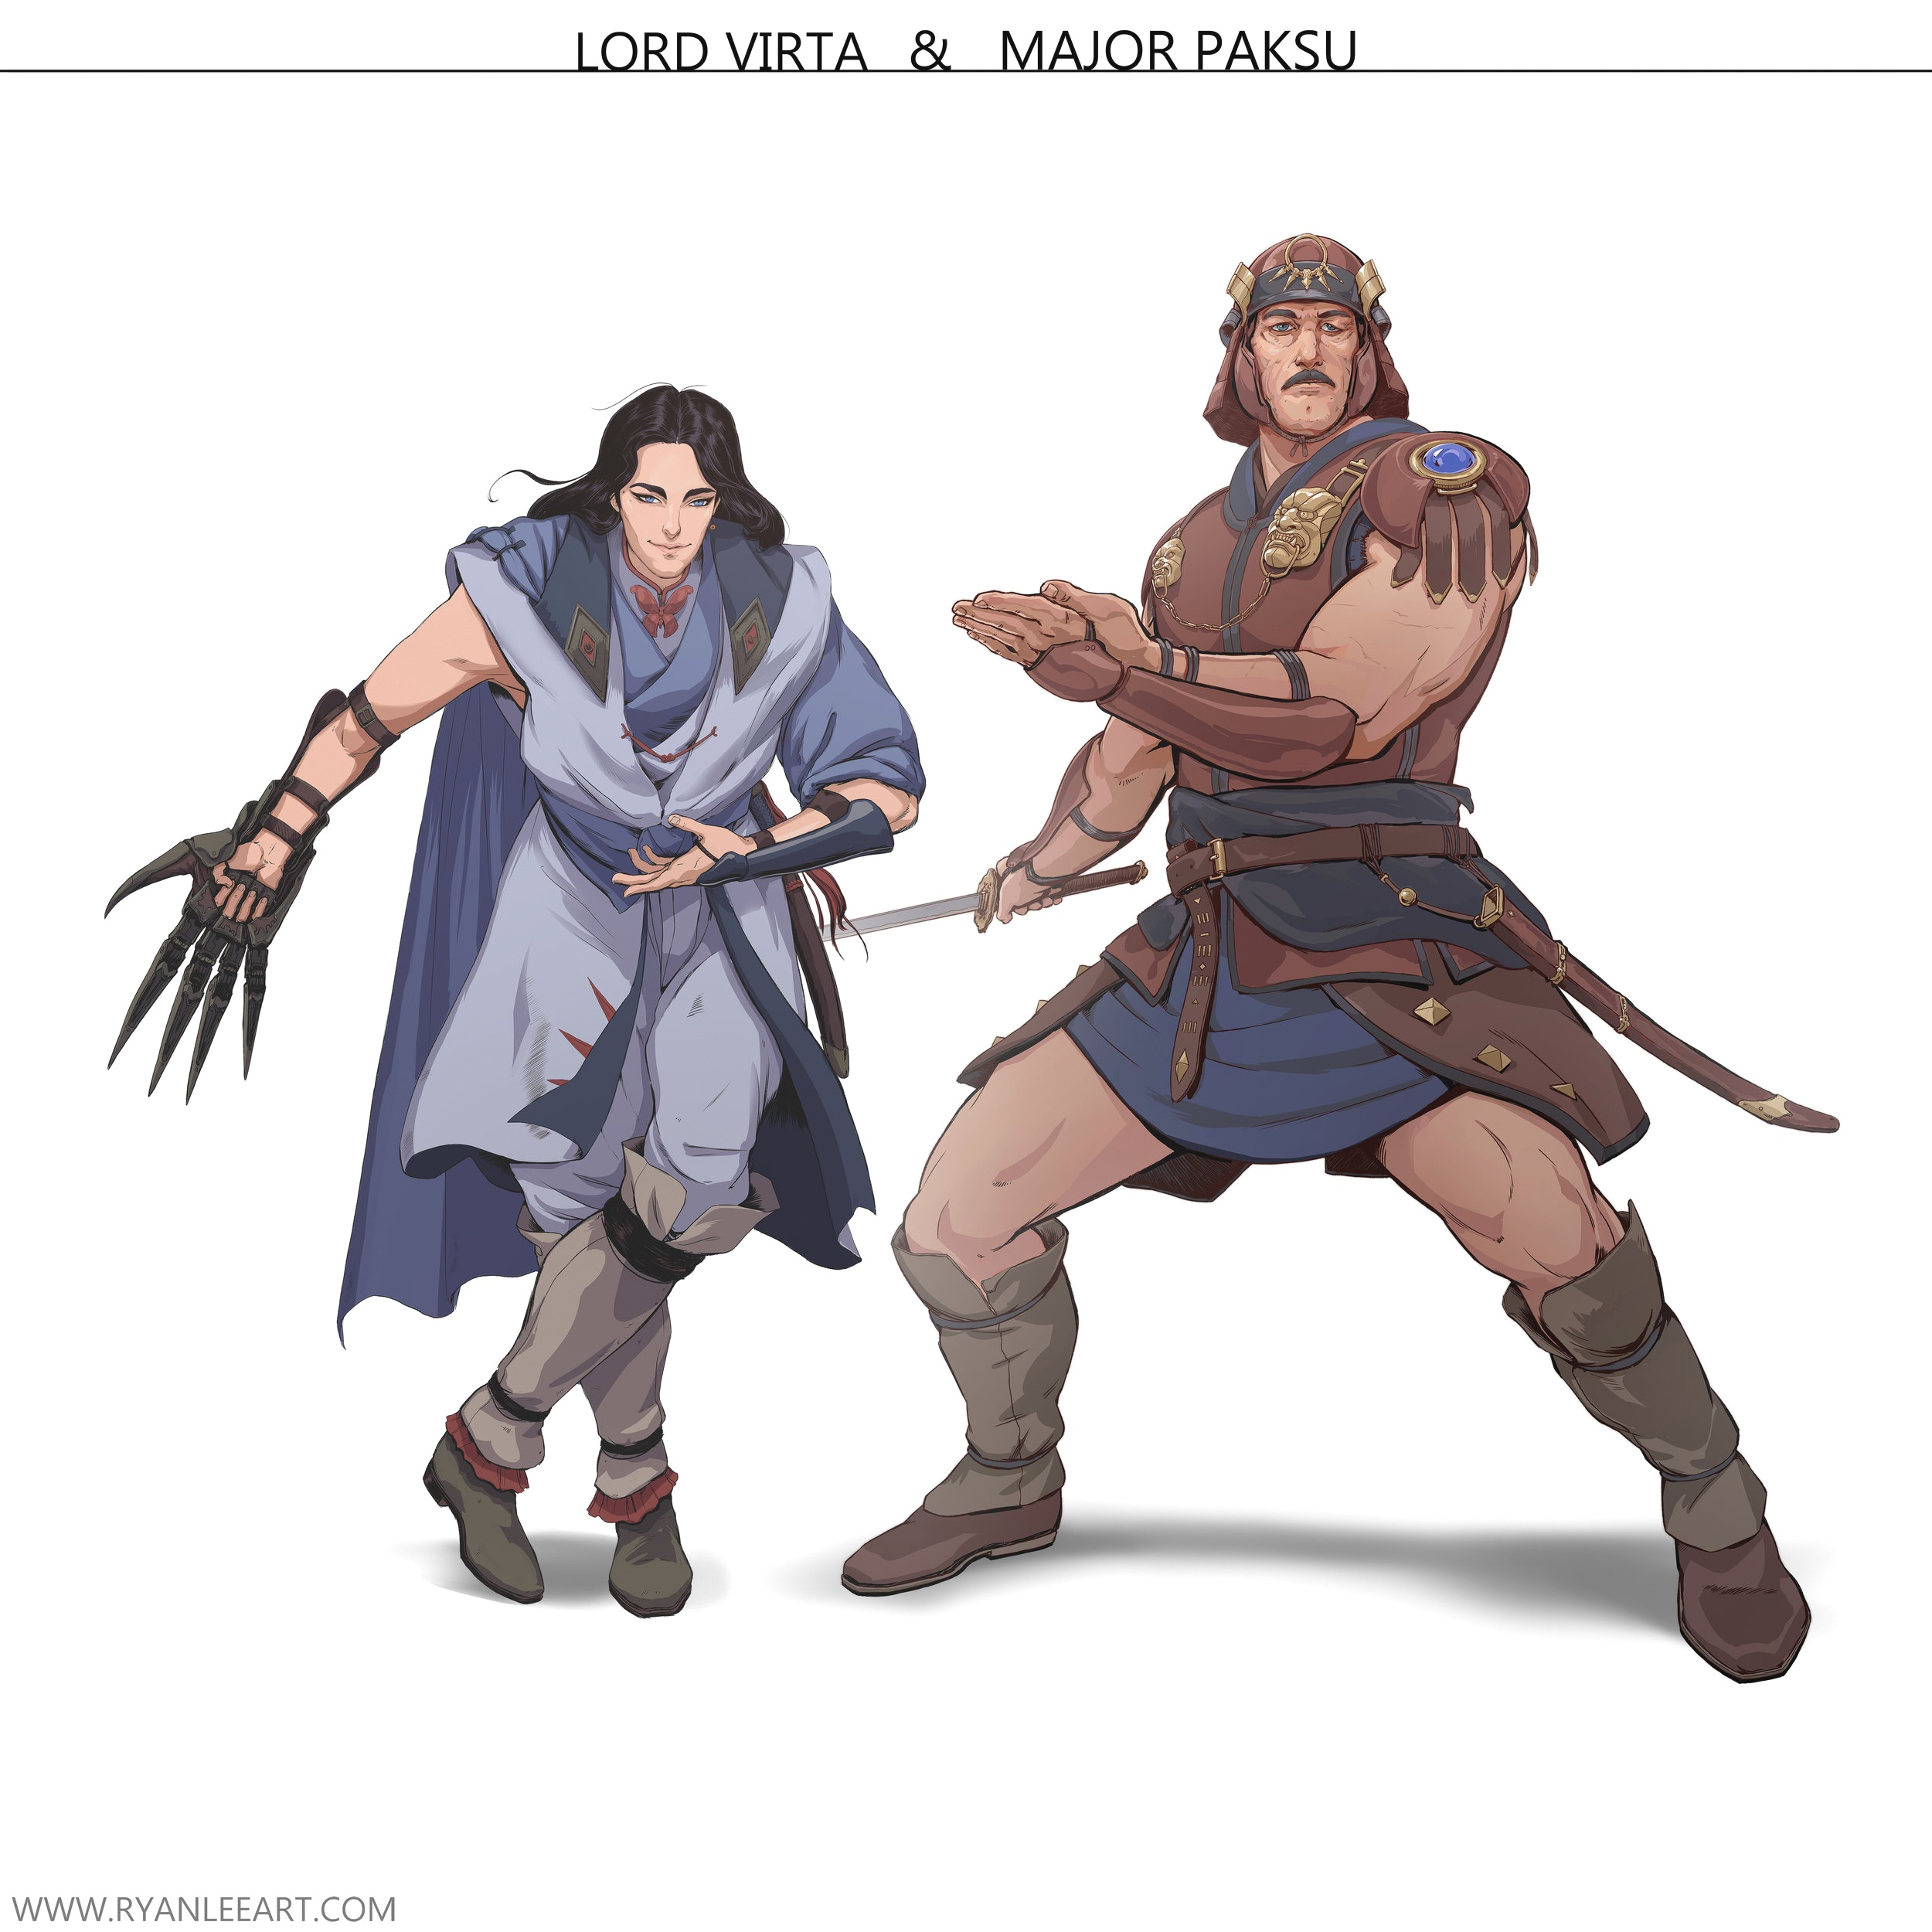 """Lord Virta & Major Paksu    Major Paksu:  Major Augustus """"Paksu"""" Bal'Klima rose to prominence in the Rhezzian military under the infamous General Mekkos during their attempted conquest of Old Kingdom. It was largely due to Paksu's skillful leadership and near mythical battle prowess that the Rhezzians were able to maintain a few footholds in the north-eastern territories and keep them to this day. He has claimed the lives of 56 Kingdomites by his sword alone, prompting many songs to be written of his exploits on the battlefield. The mere mention of his name among natives and Rhezzians alike is enough to send chills down the spine of even the most seasoned warrior."""